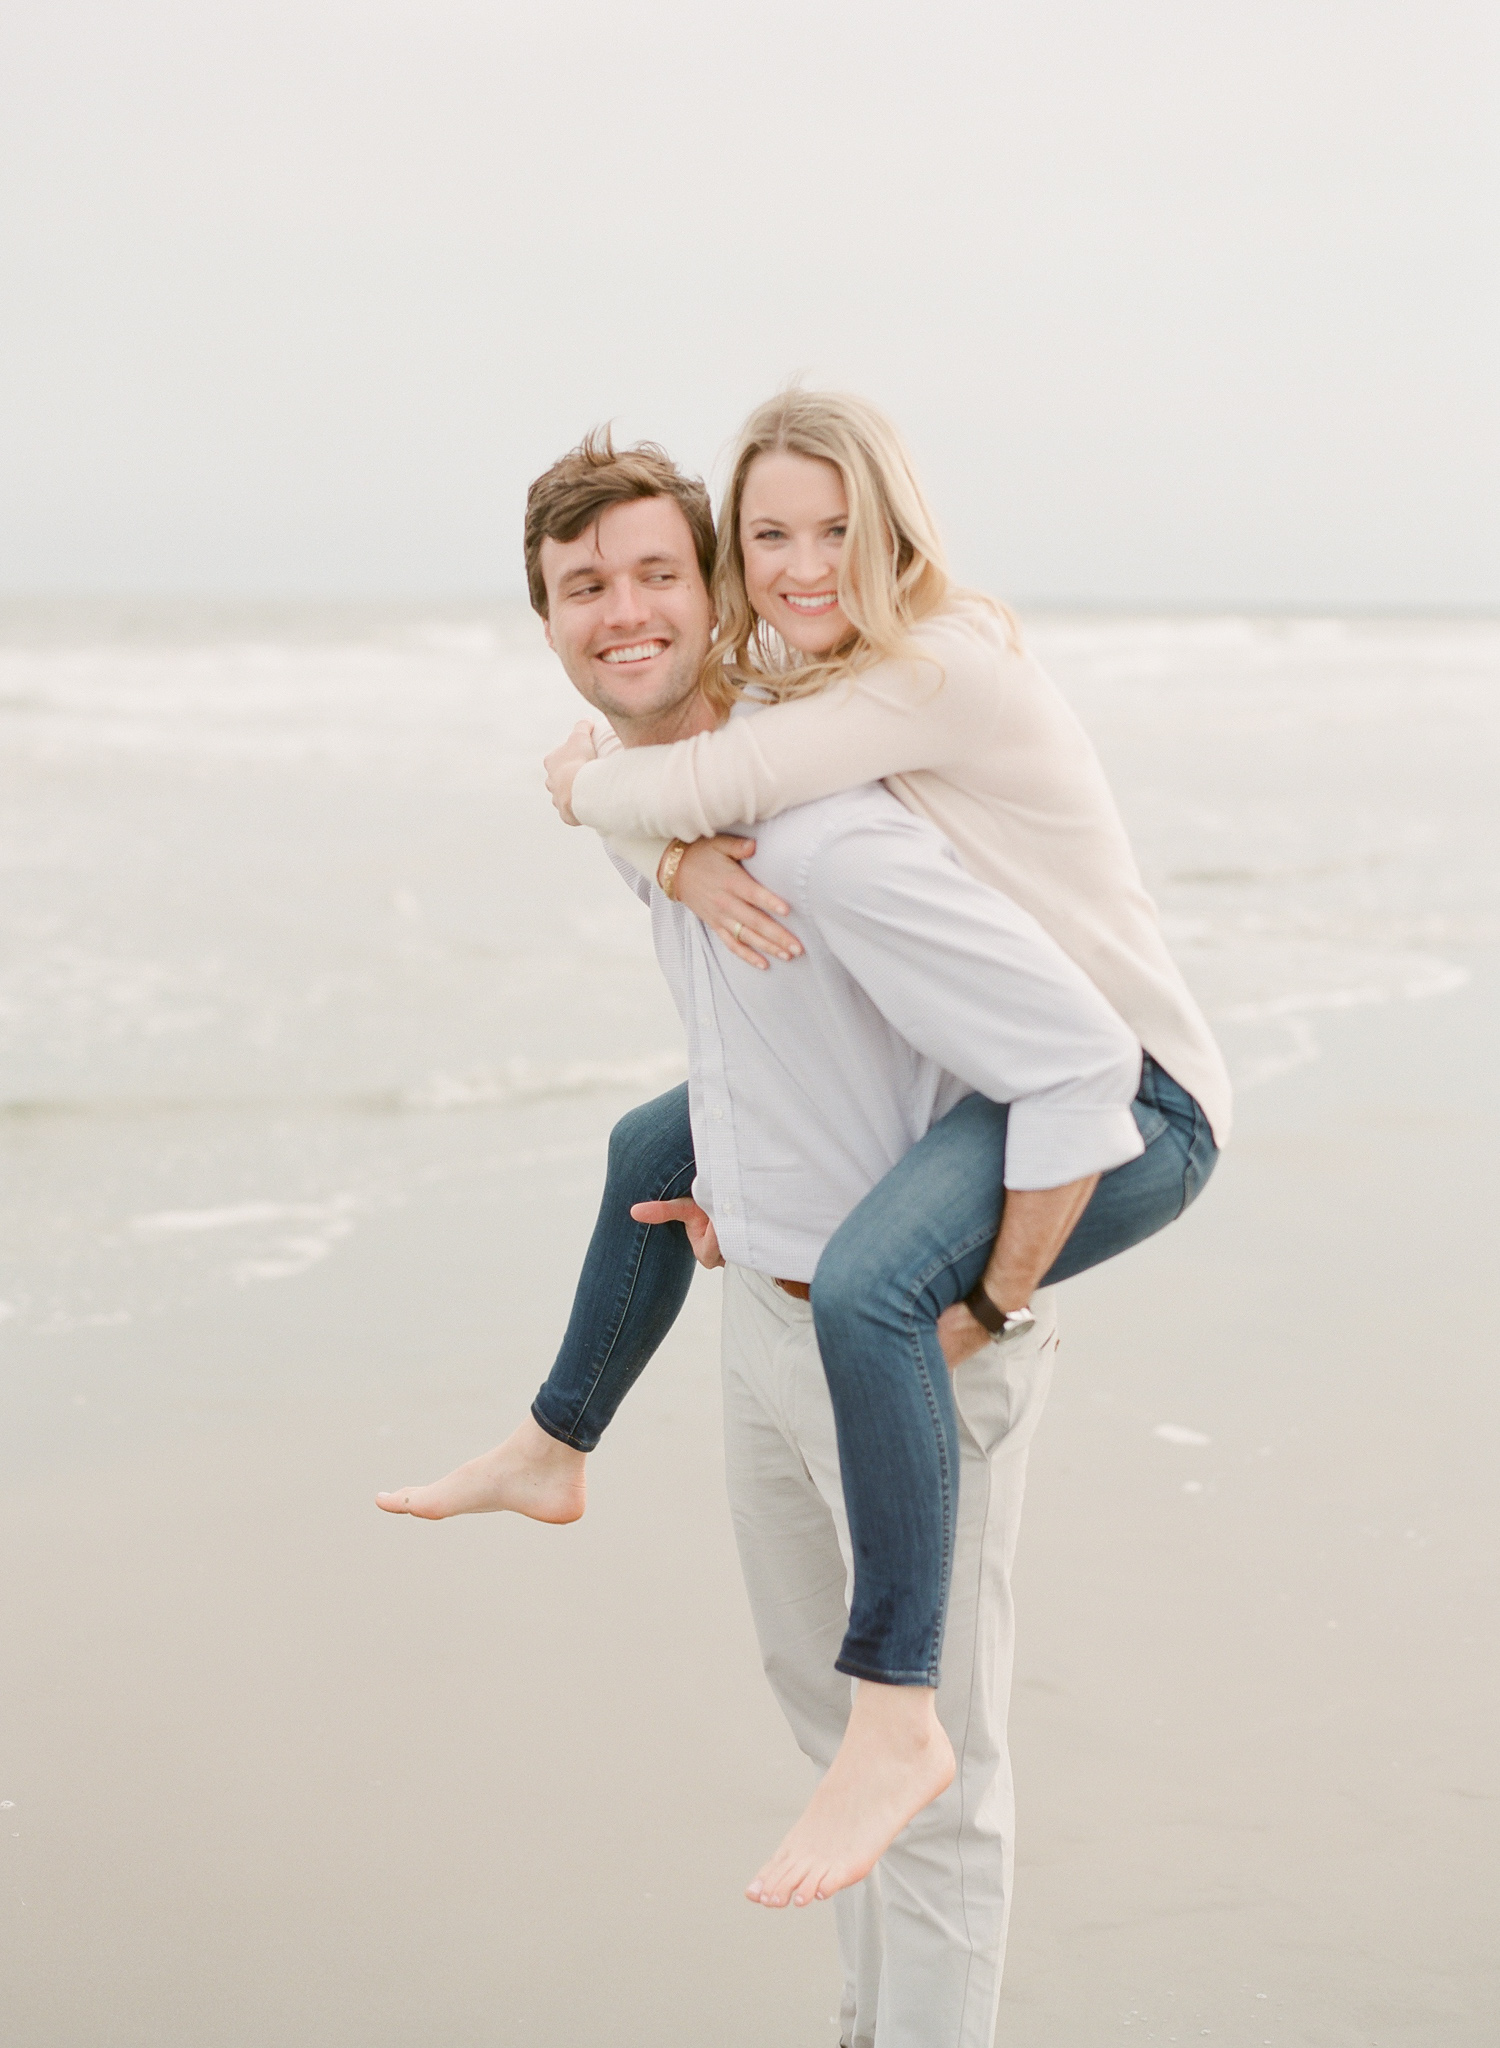 Charleston-Engagement-Session-Photos-29.jpg